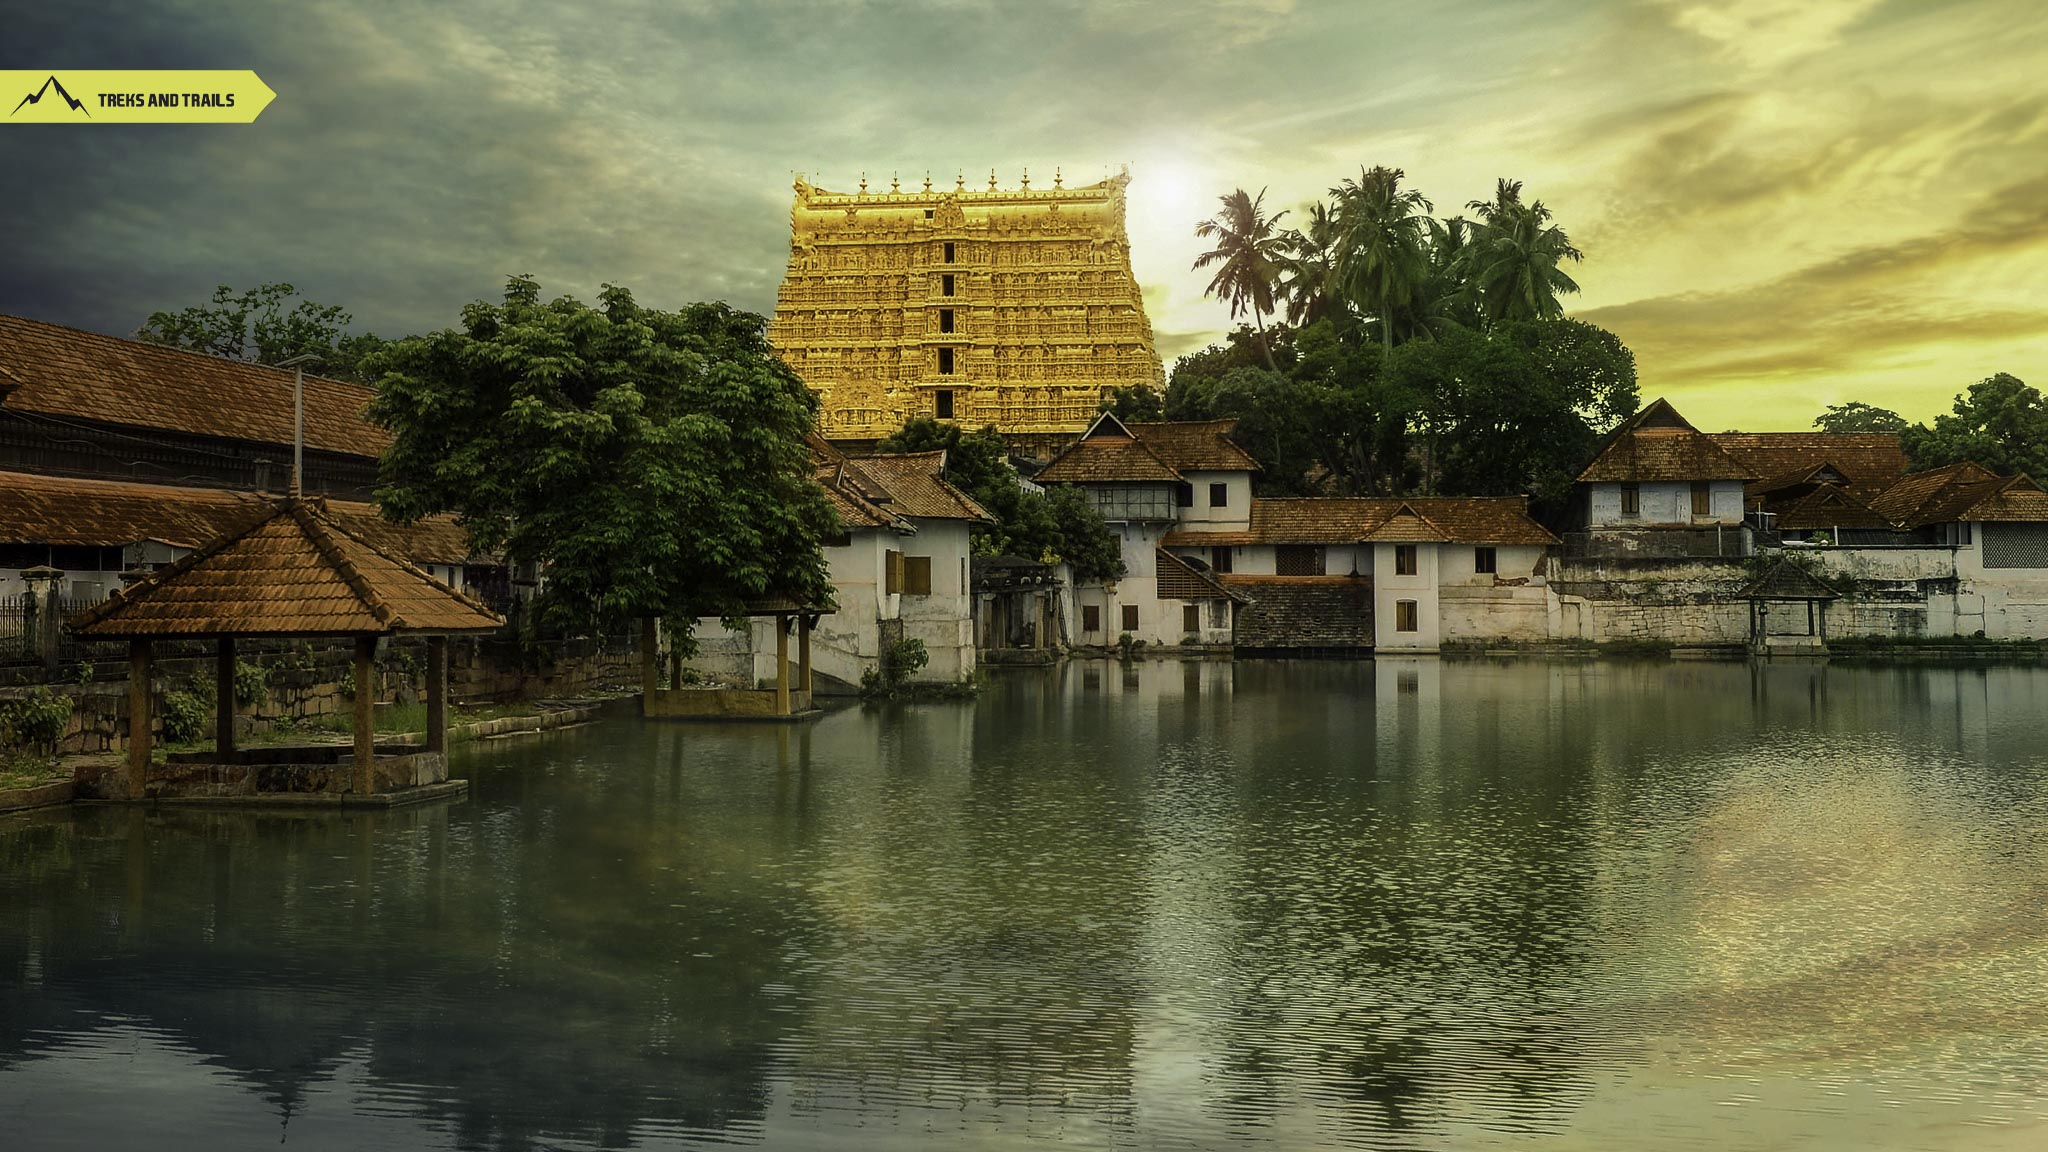 Sri Padmanabhaswamy temple in Trivandrum Kerala